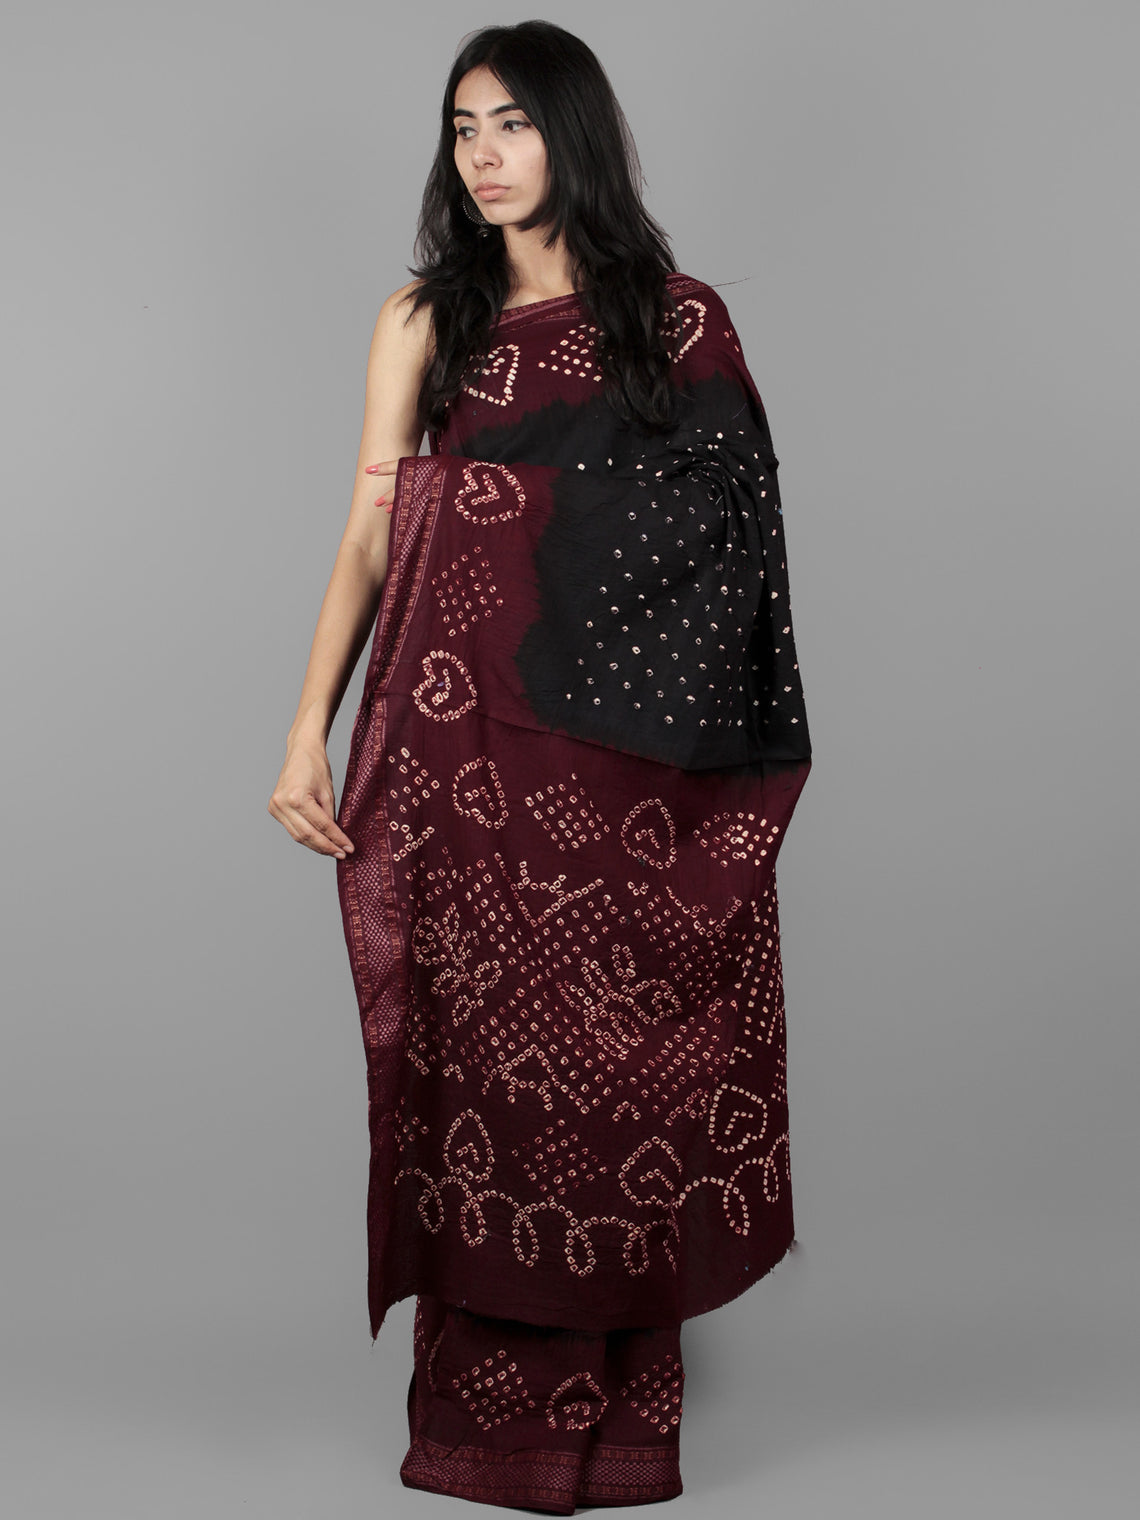 Black Maroon Ivory Hand Tie & Dye Bandhej Glace Cotton Saree With Resham Border - S031701980